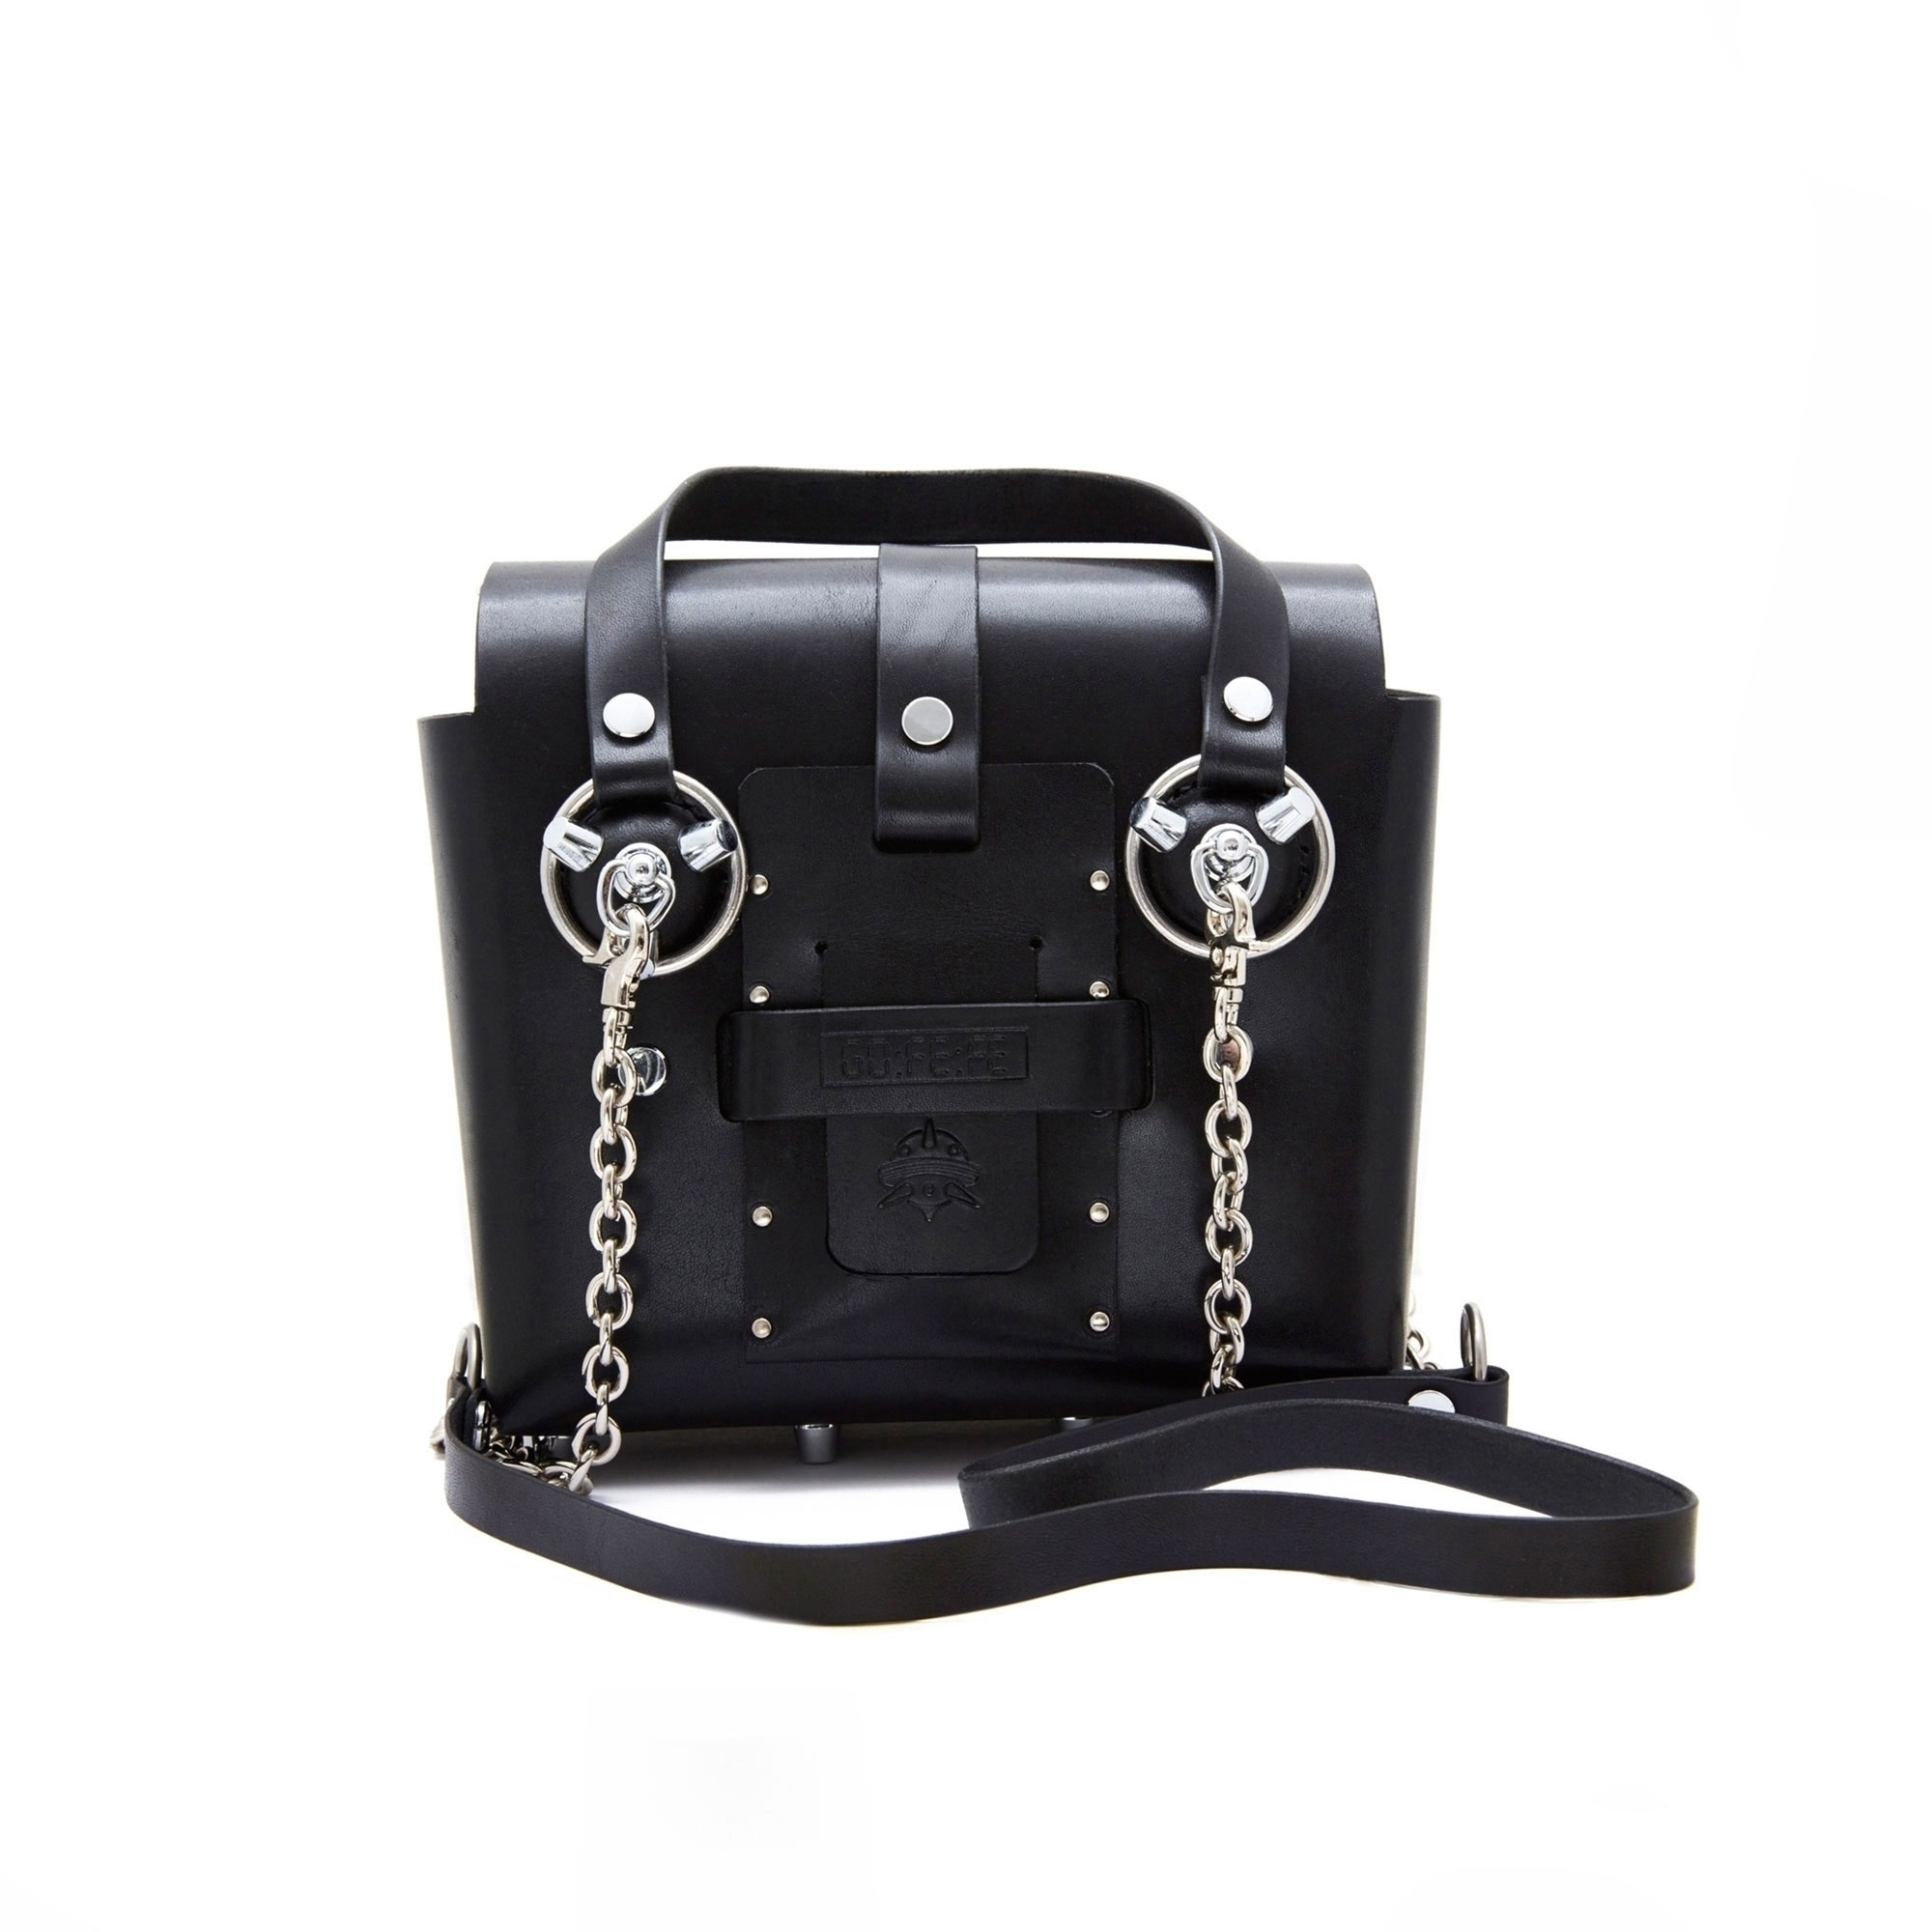 77dbea8987483 GOFEFE Small Black   Silver Studded Leather Bag - Accessories from ...